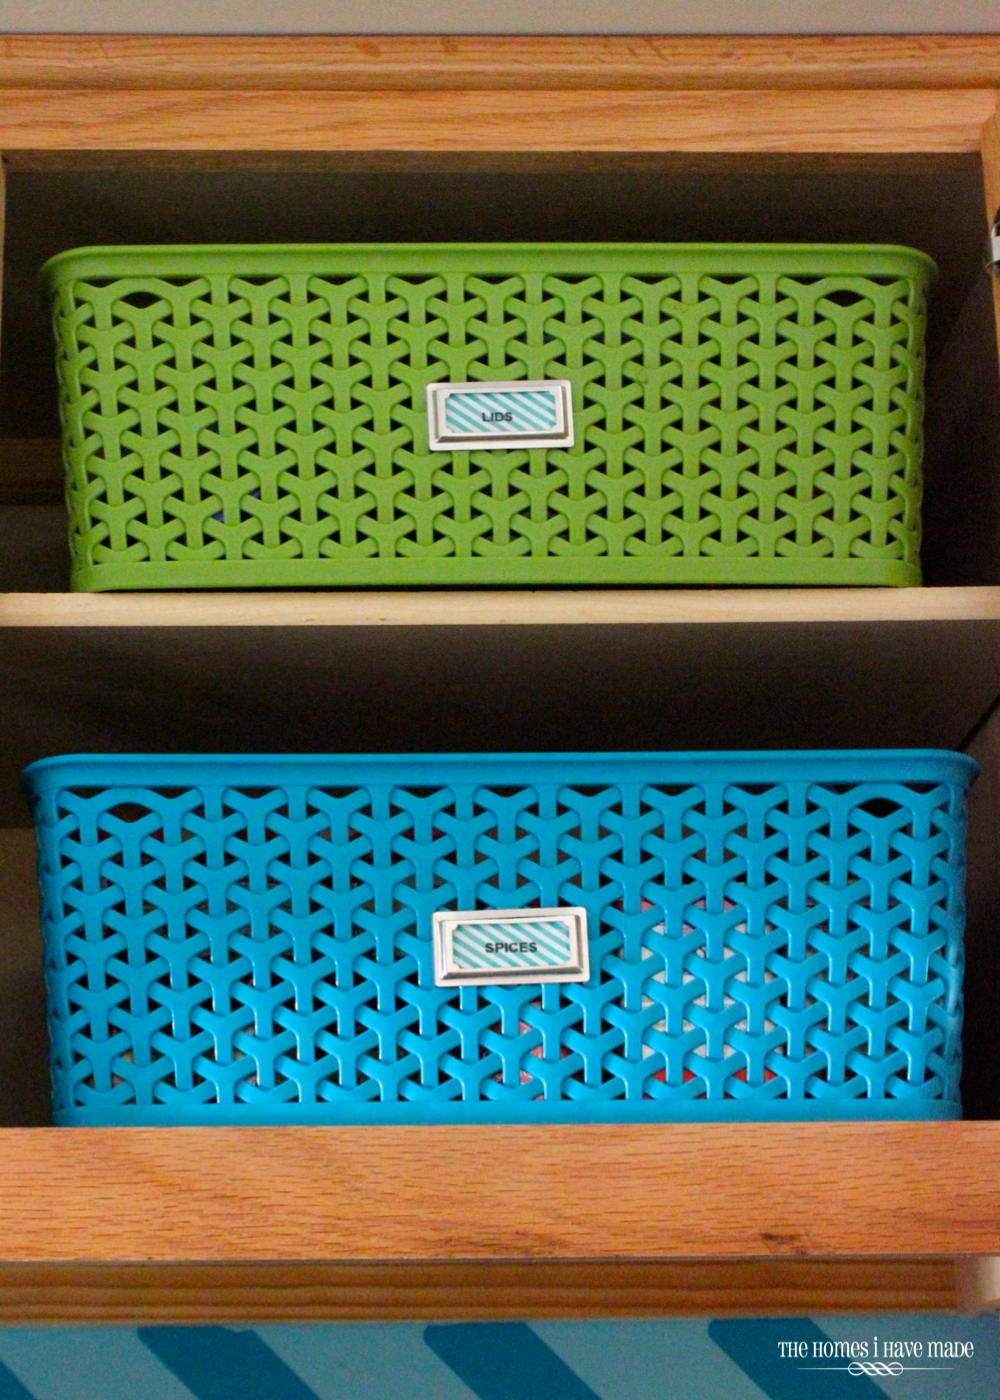 green and blue baskets in a little upper cabinet